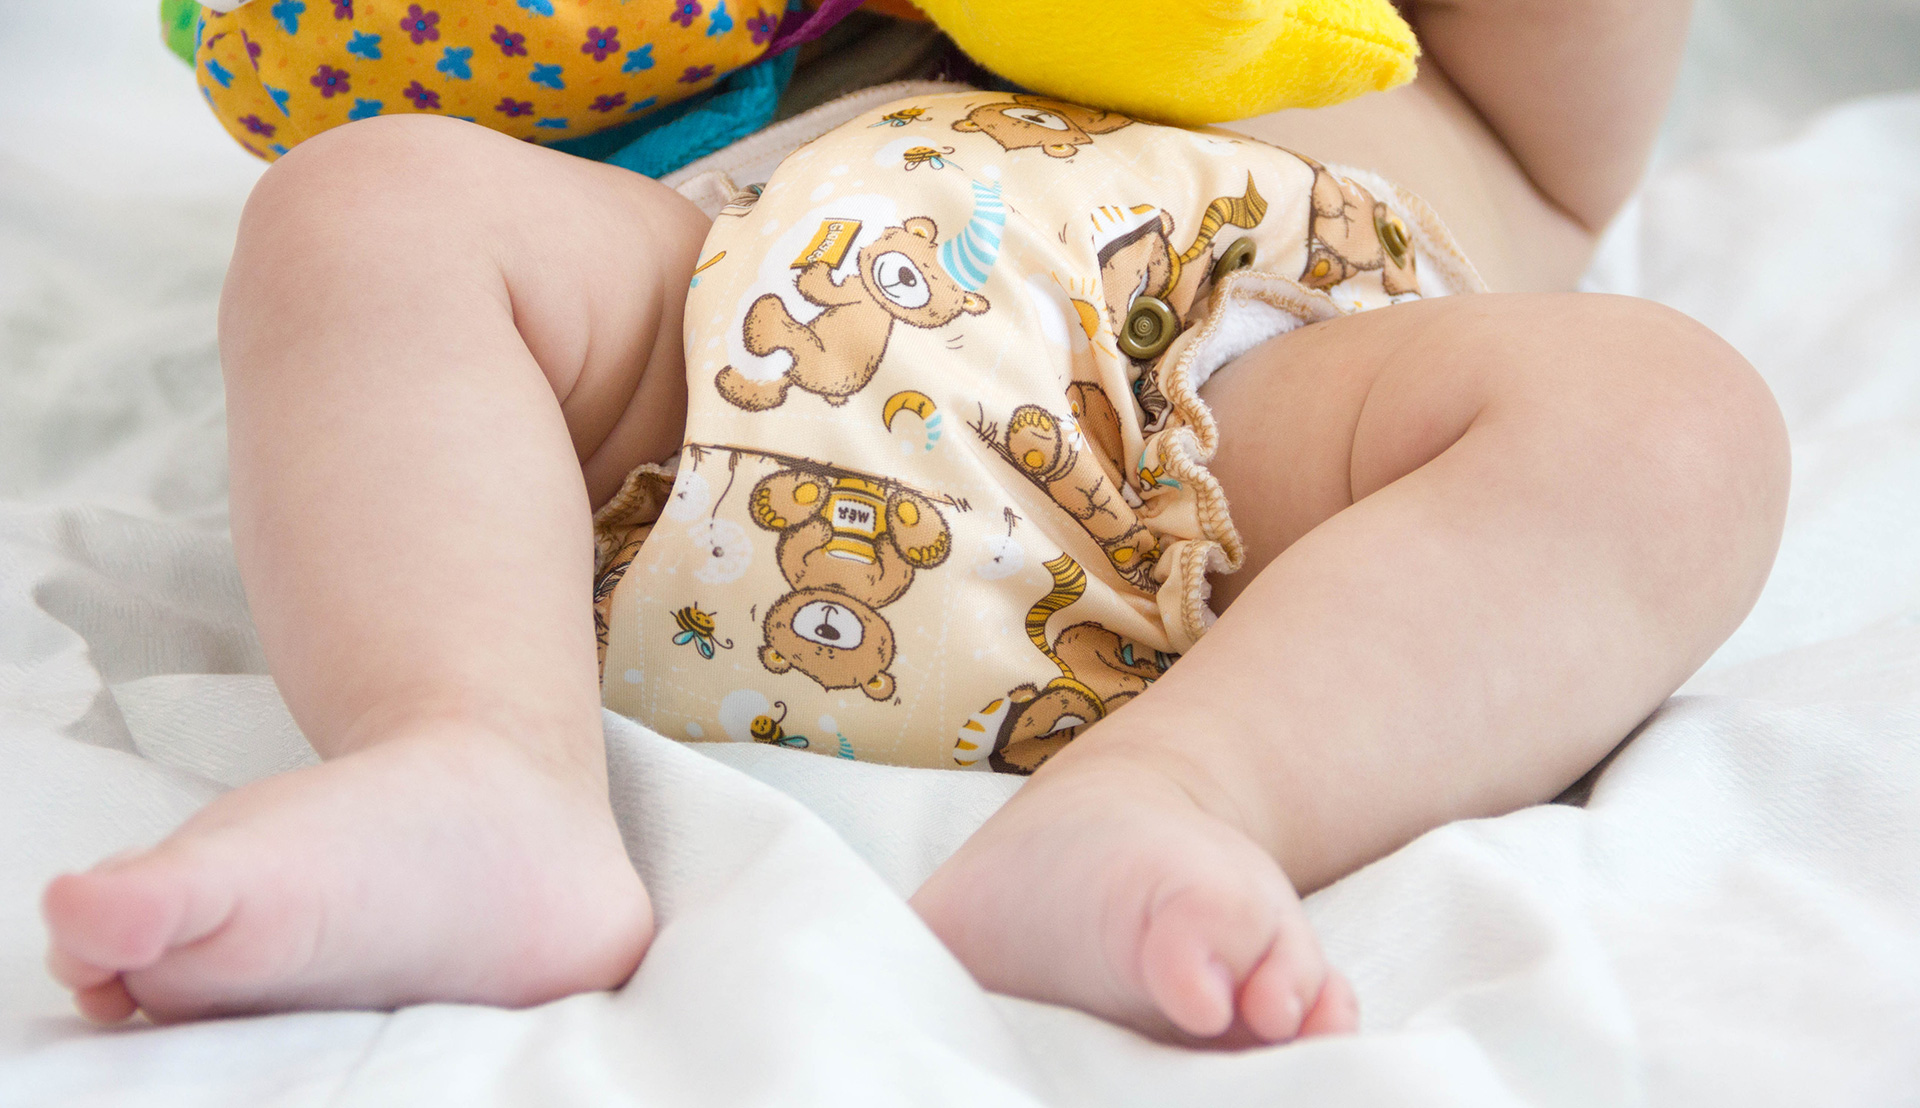 How To Properly Strip Cloth Diapers And Get The Stink Out